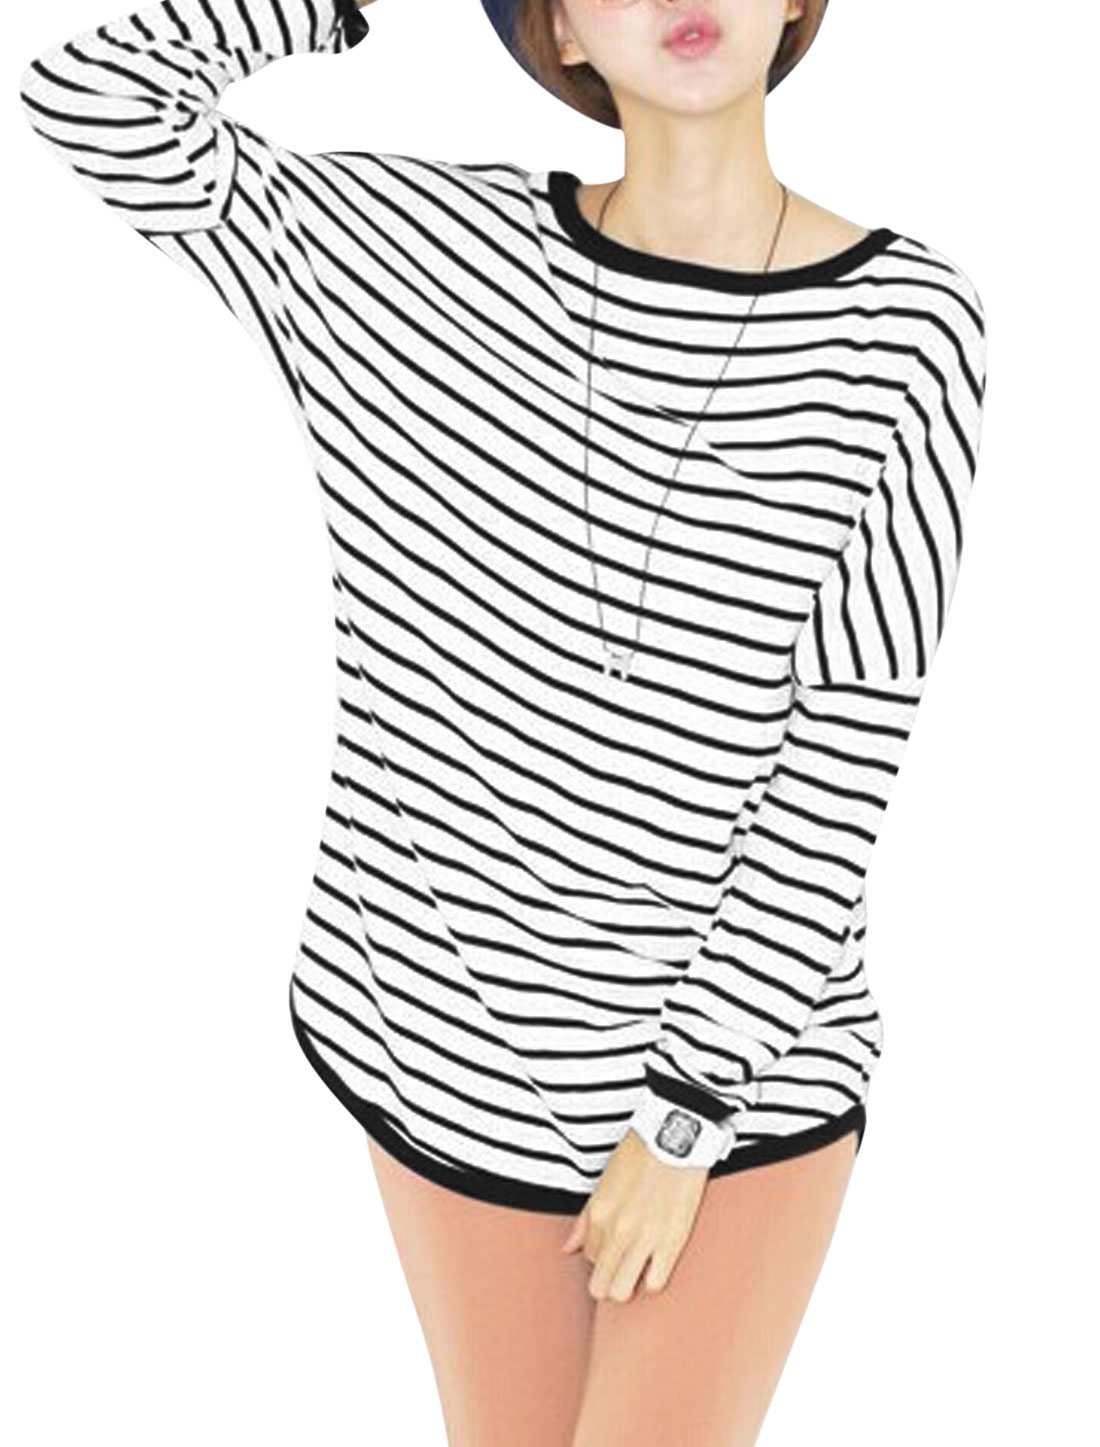 Lady Batwing Sleeve Stripes Pattern Casual Tunic Top White Black S